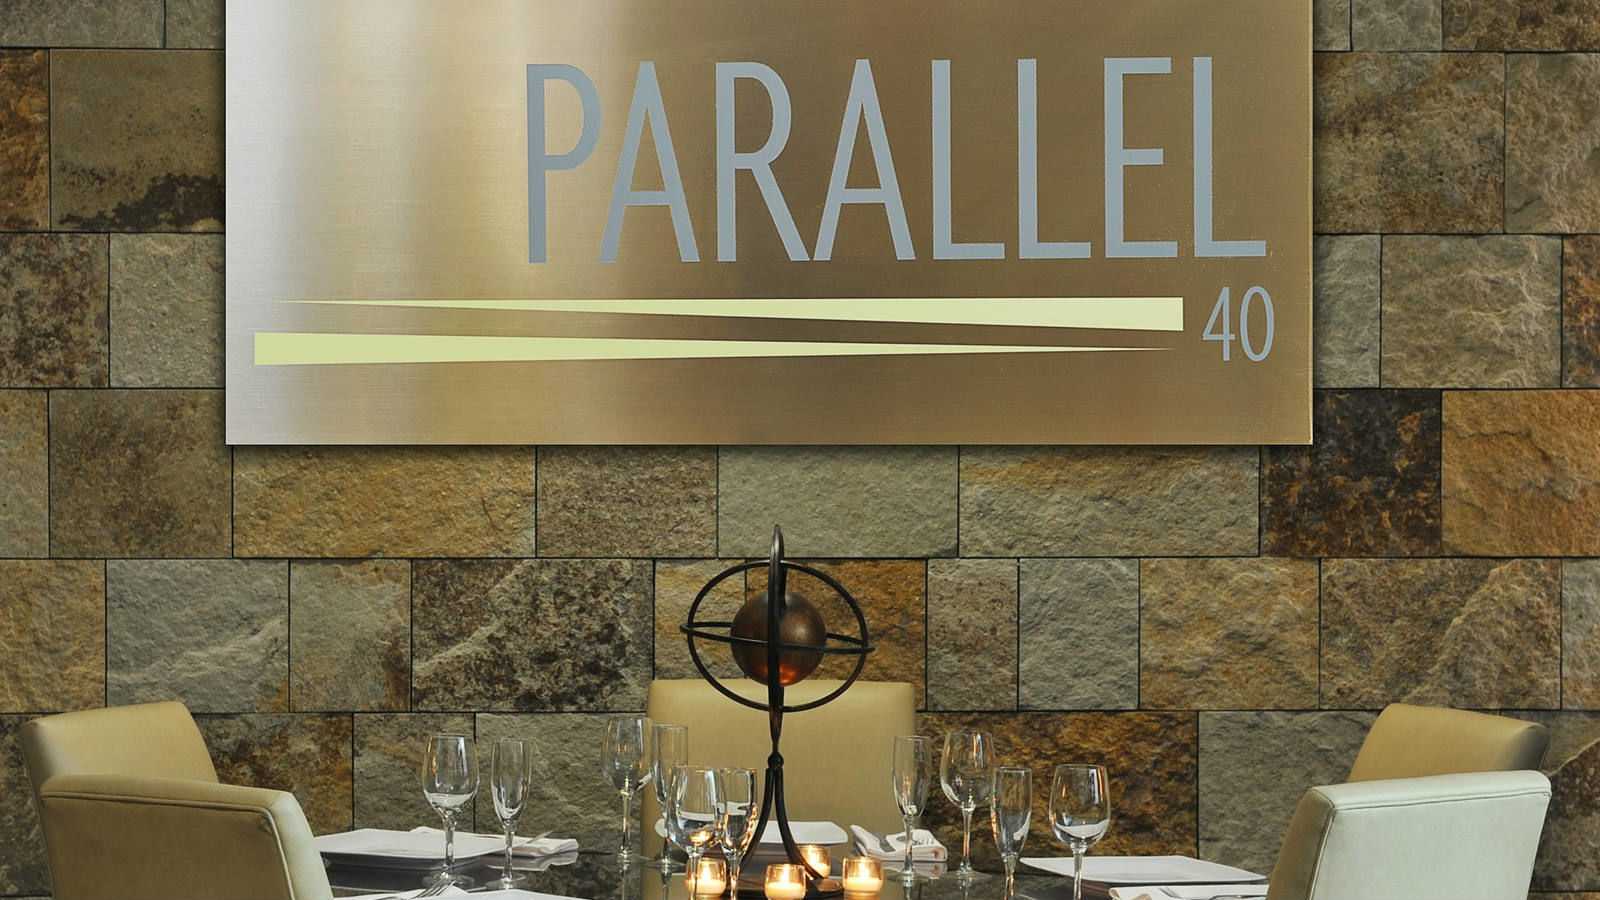 Princeton restaurants | Parallel 40 Restaurant